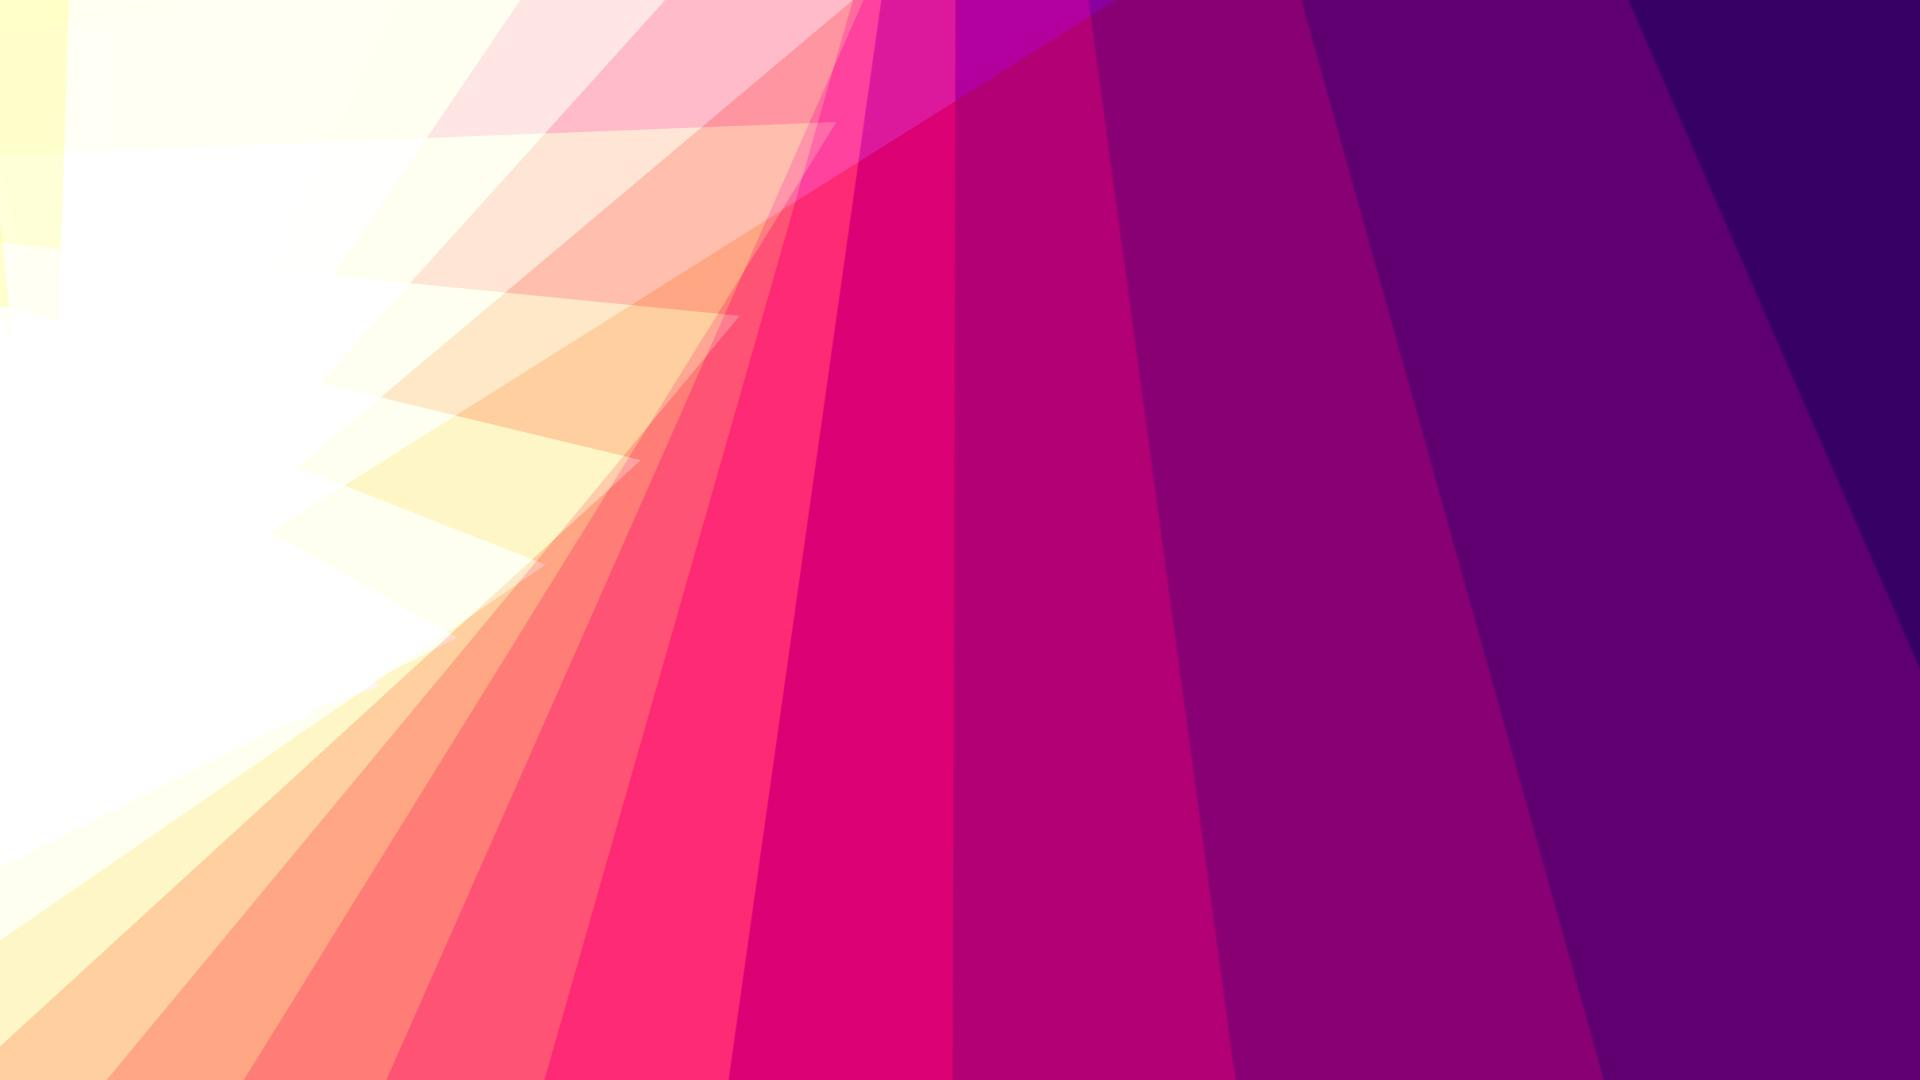 Hd Red Vertical Light Line Backgrounds Widescreen and HD background 1920x1080